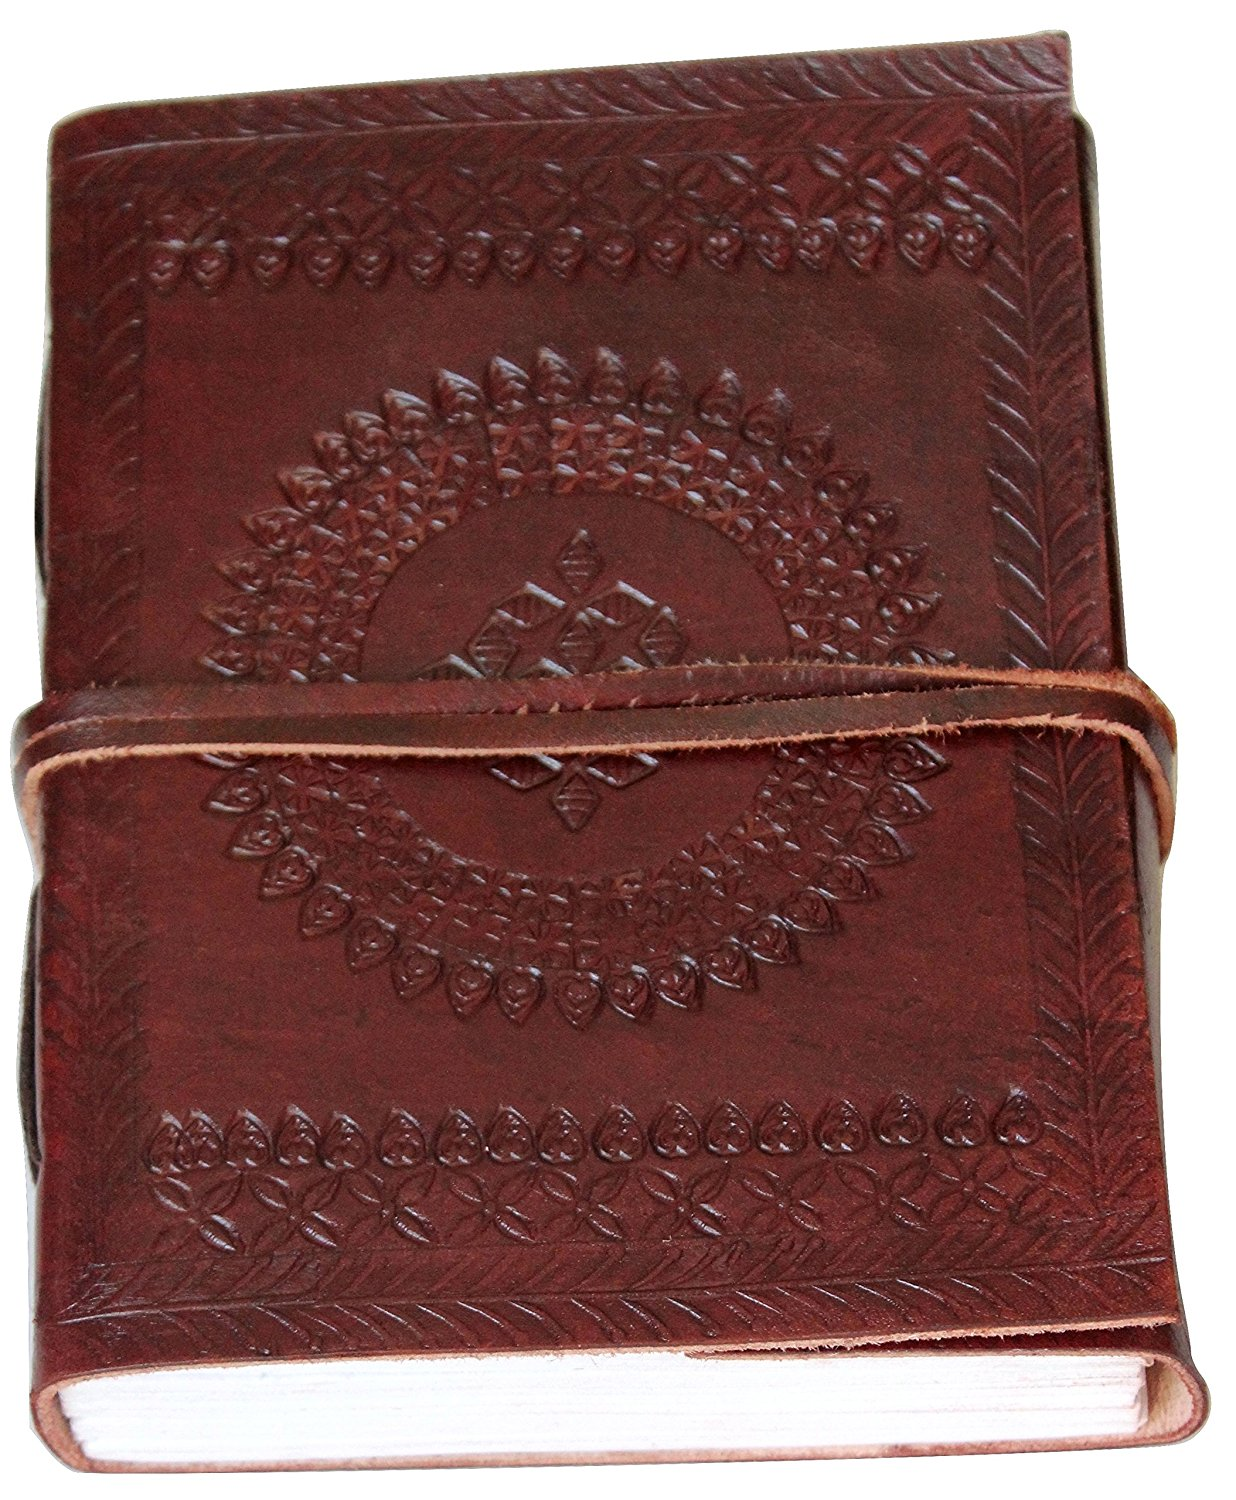 """Classic Embossed Leather Journal Diary (Handmade) with leather strap closure - 25% off SALES + SPECIAL OFFER NOW! (6"""" x 4.6"""")"""